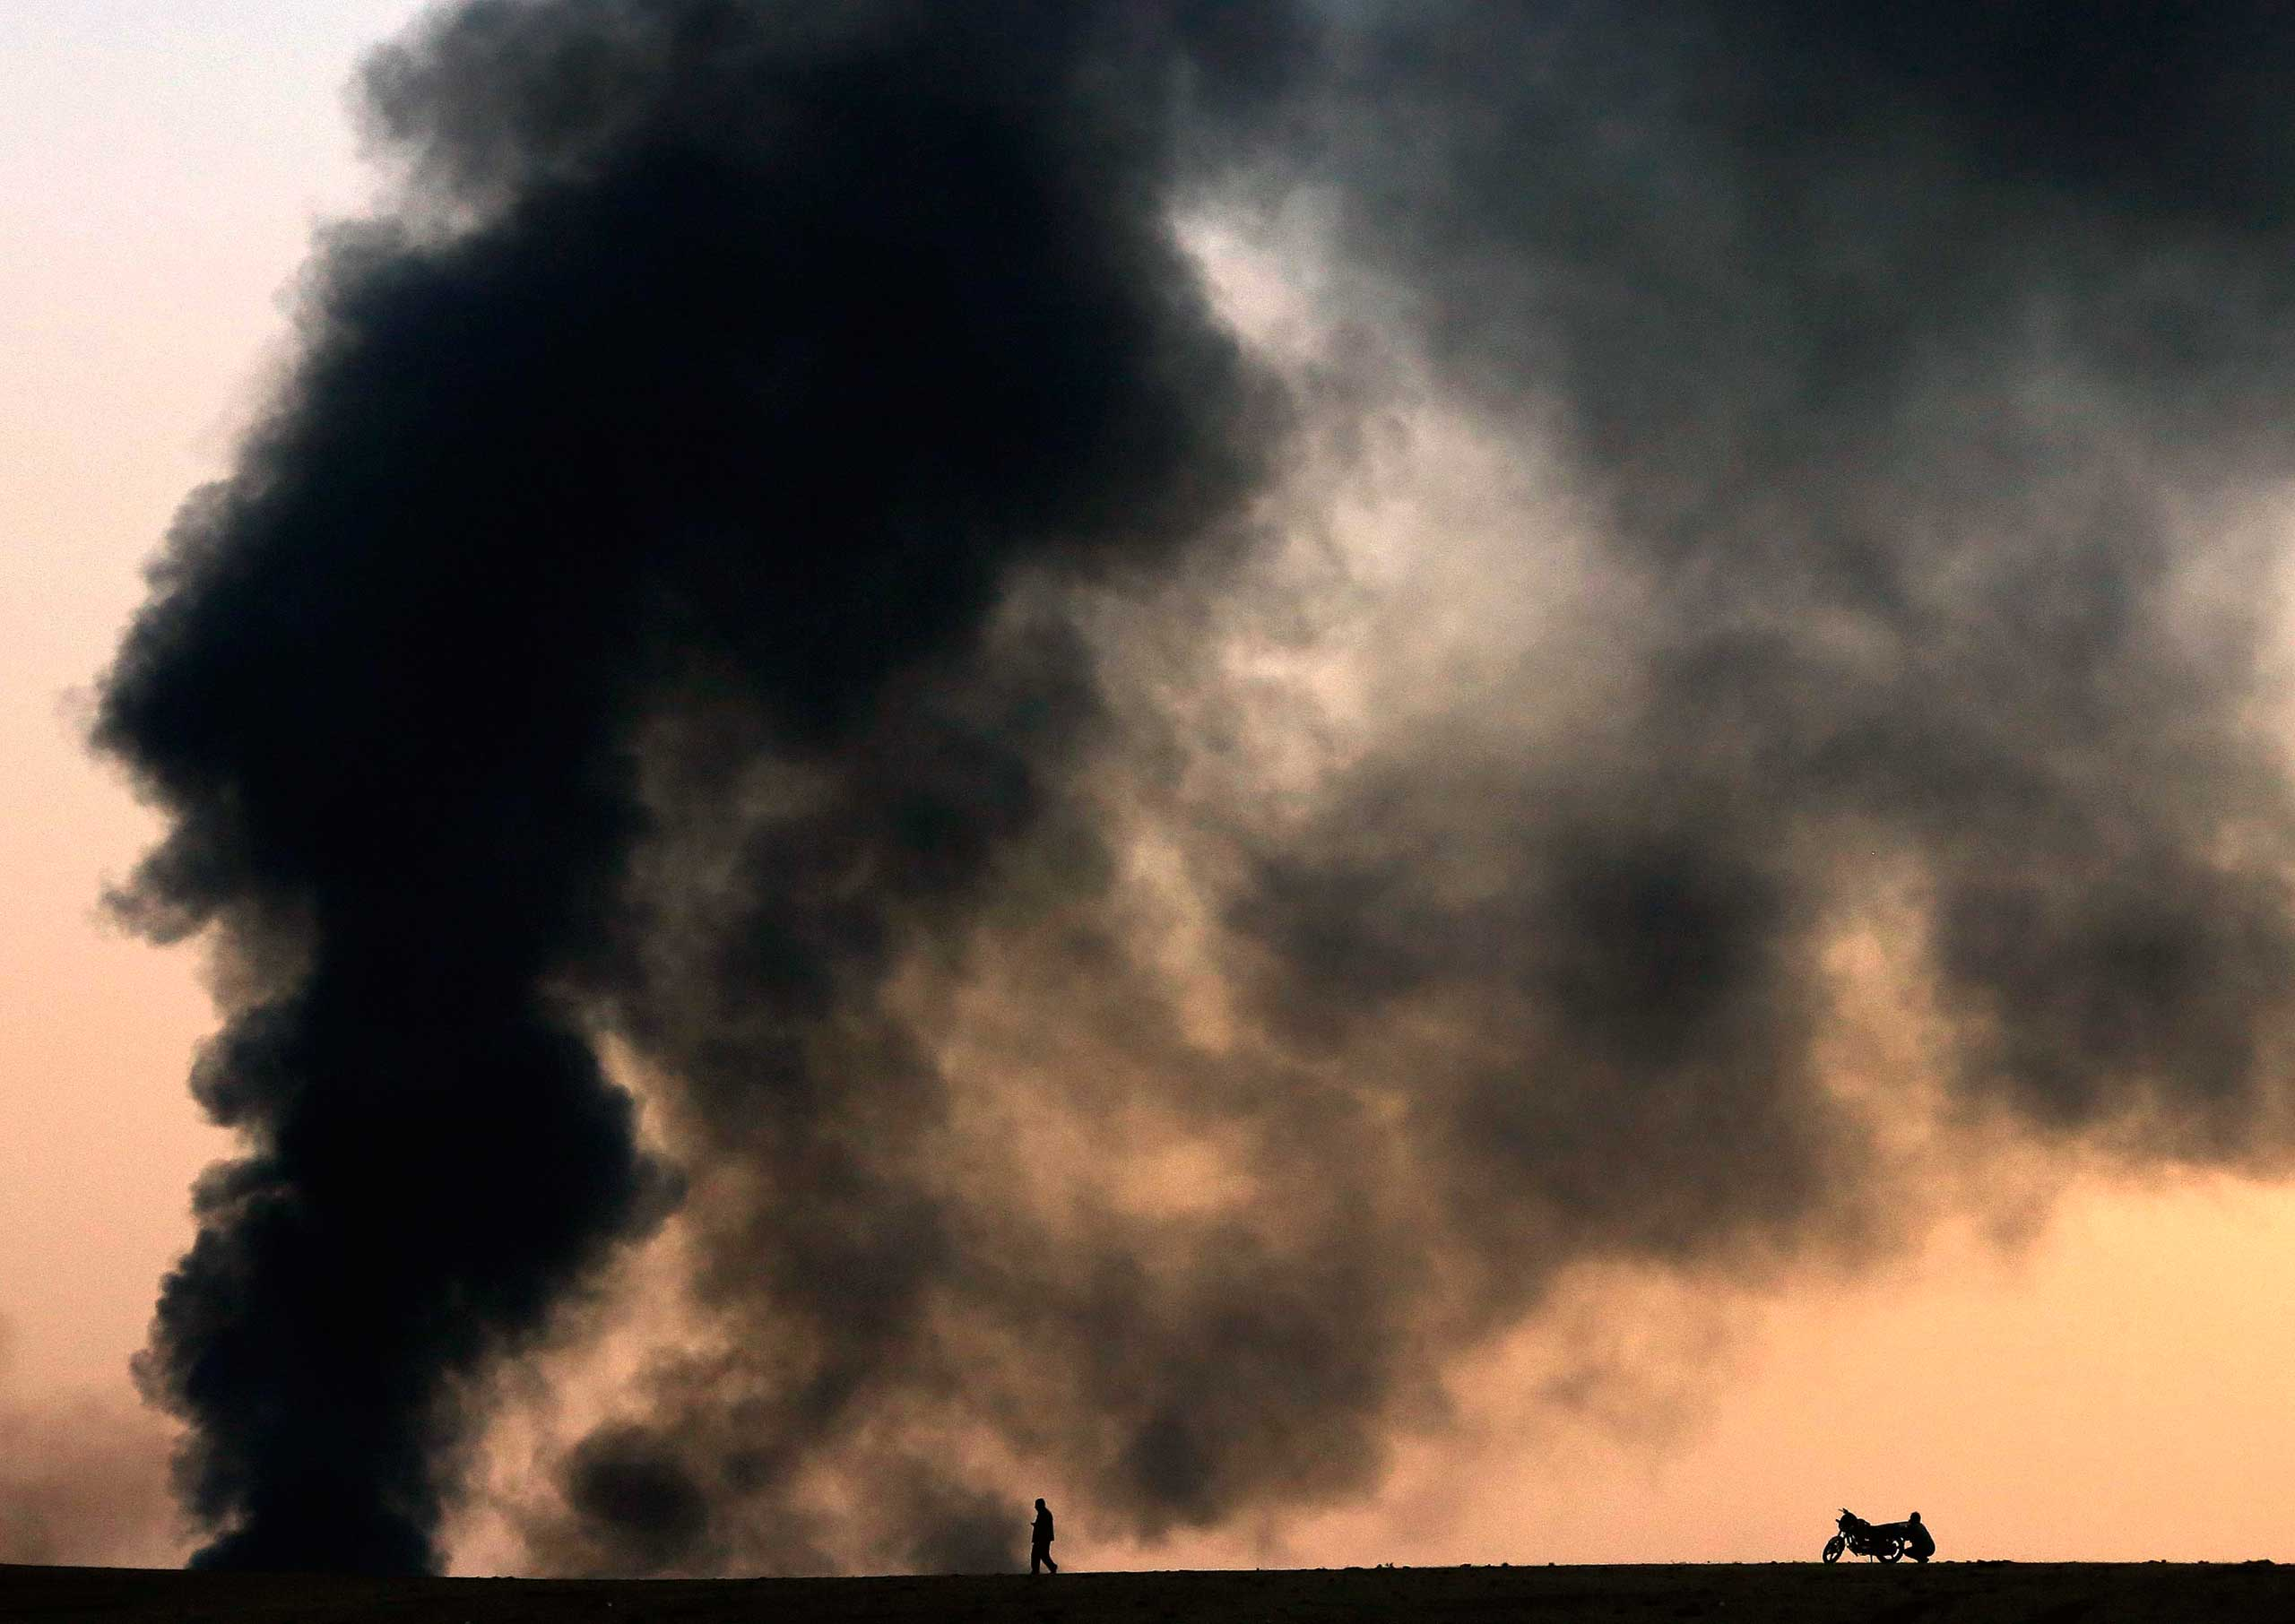 Oct. 26, 2014. Kurdish refugees watch from a hilltop as thick smoke rises from the Syrian town of Kobani during heavy fighting between Islamic State (ISIS) and Kurdish Peshmerga forces, seen from near the Mursitpinar border crossing on the Turkish-Syrian border in the southeastern town of Suruc in Sanliurfa Province.